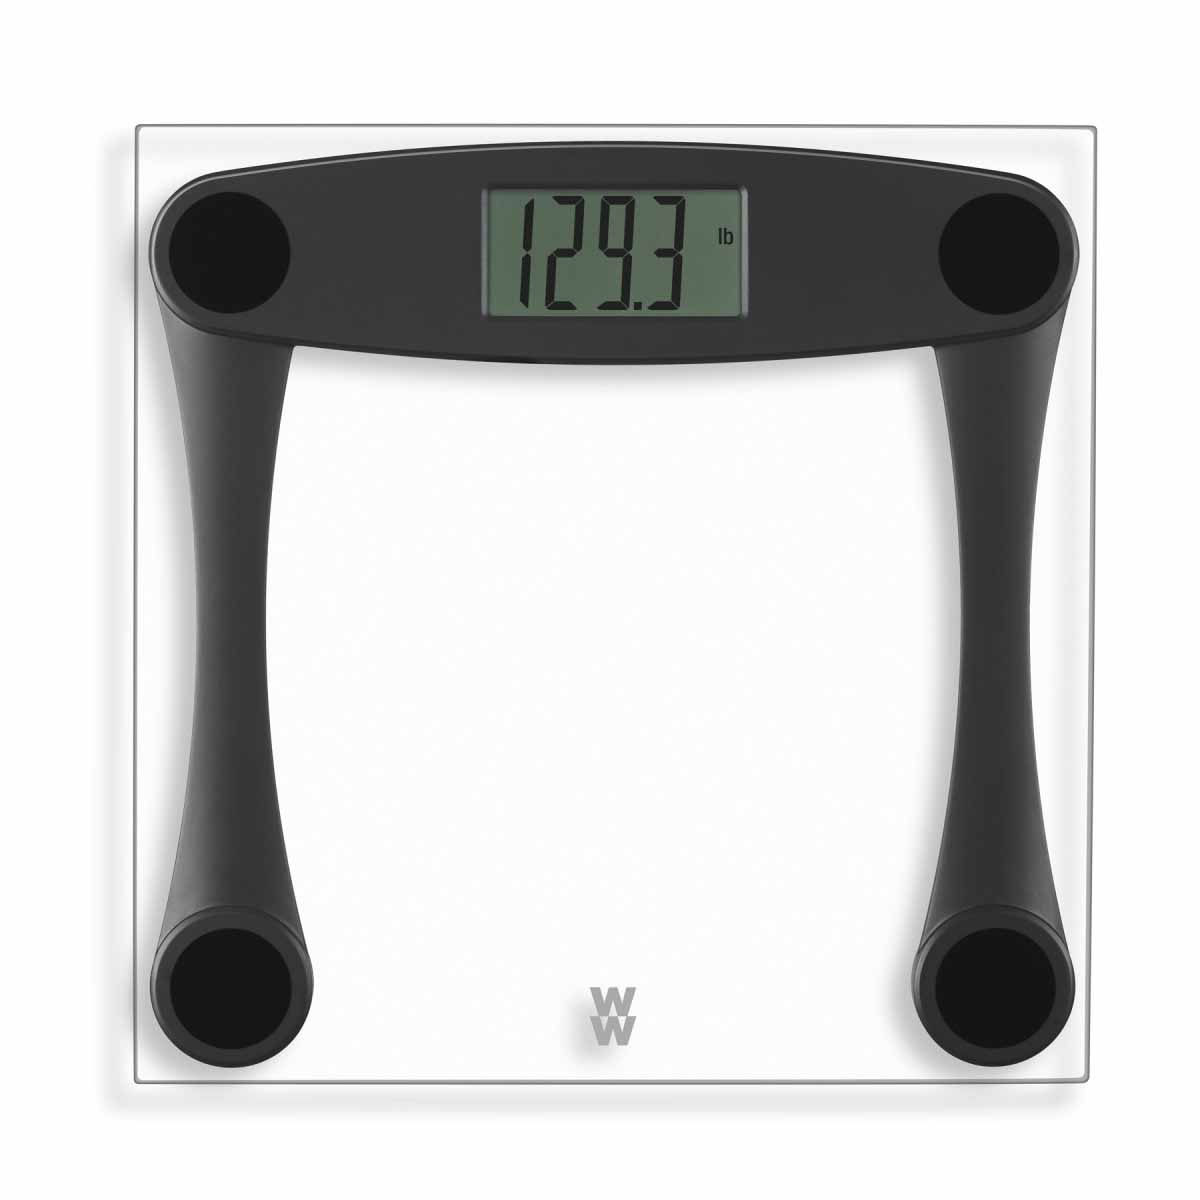 WW Conair Digital Glass Clear and Black Scale, Large 1.5-inch digital LCD readout, includes a long-lasting lithium battery , Weight capacity of 400 pounds, tap to operate, 1.9-inch-square frame.